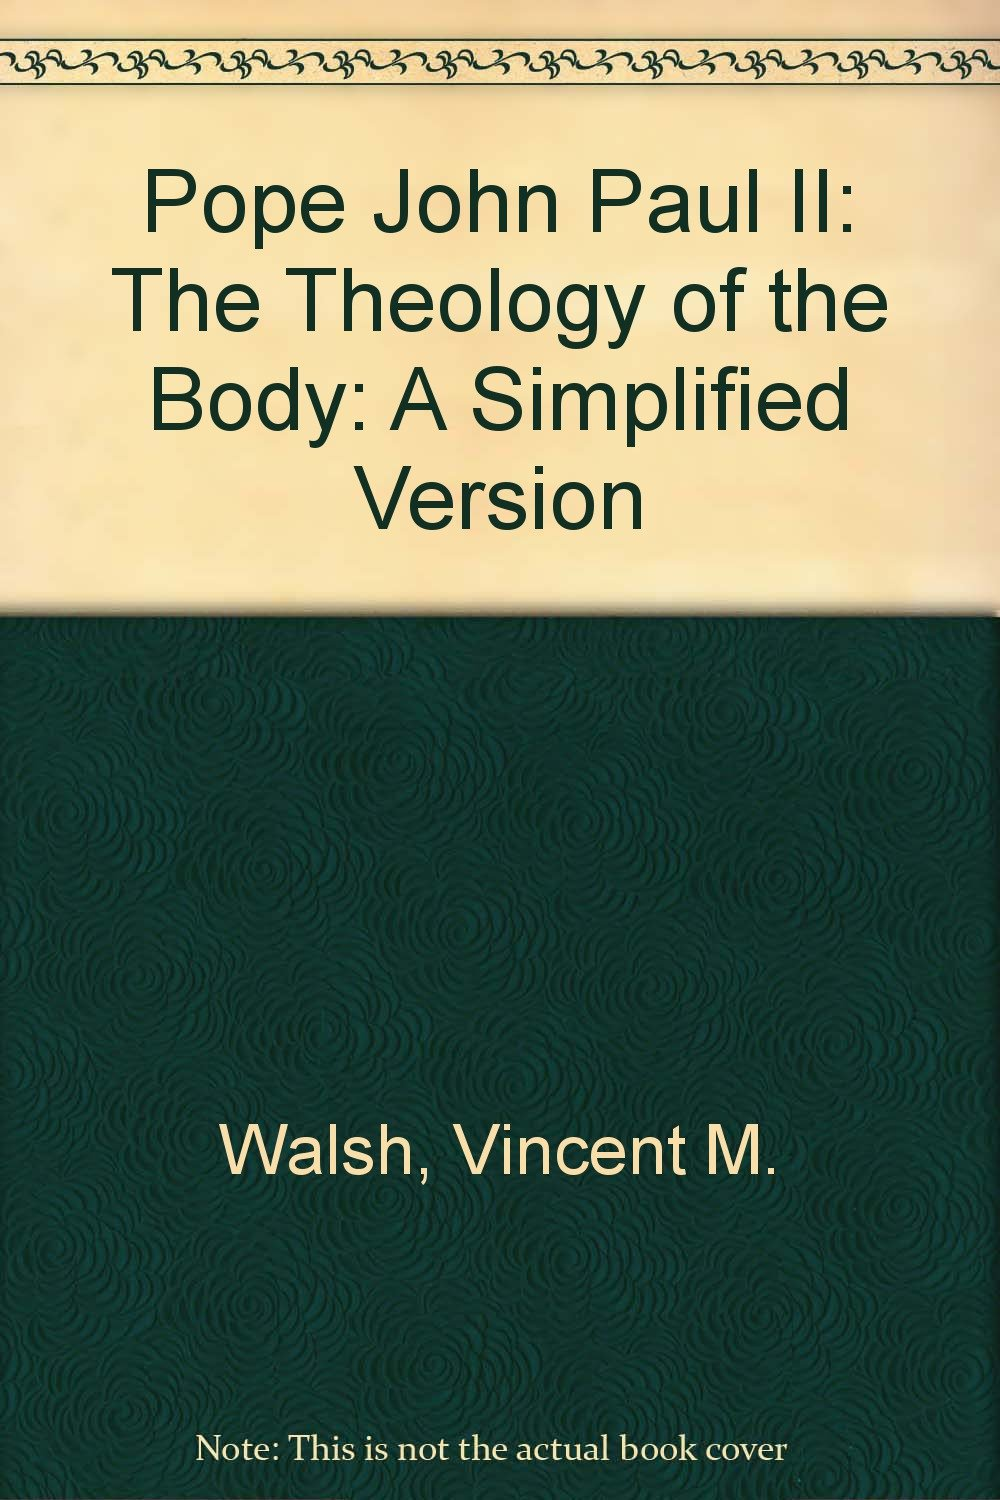 Pope John Paul II: The Theology of the Body: A Simplified Version